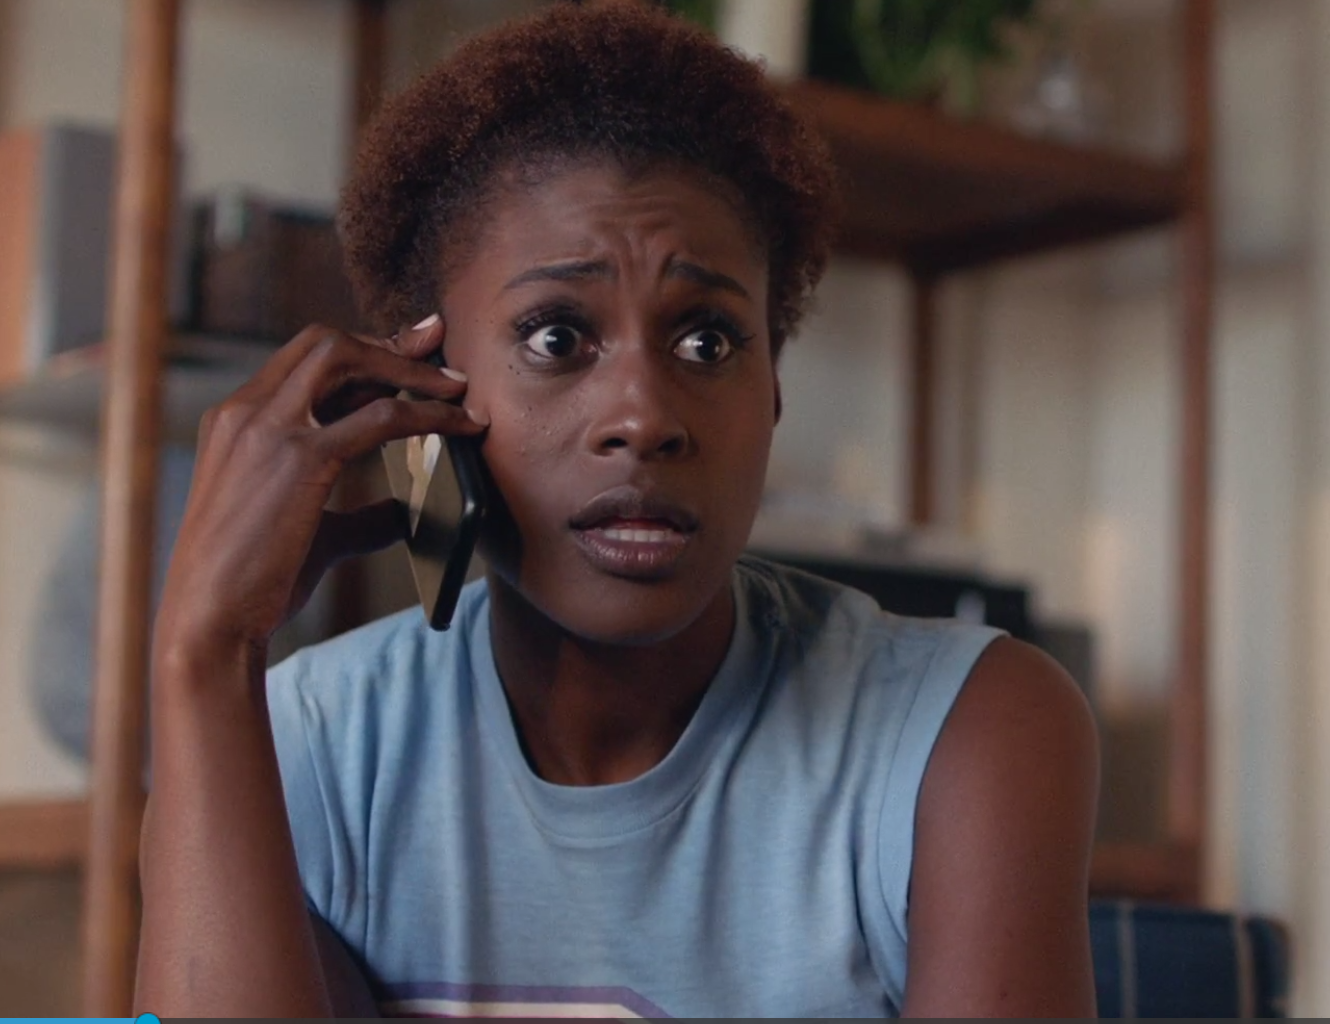 Issa Rae Natural Afro on HBO Insecure Hello Disrespectful